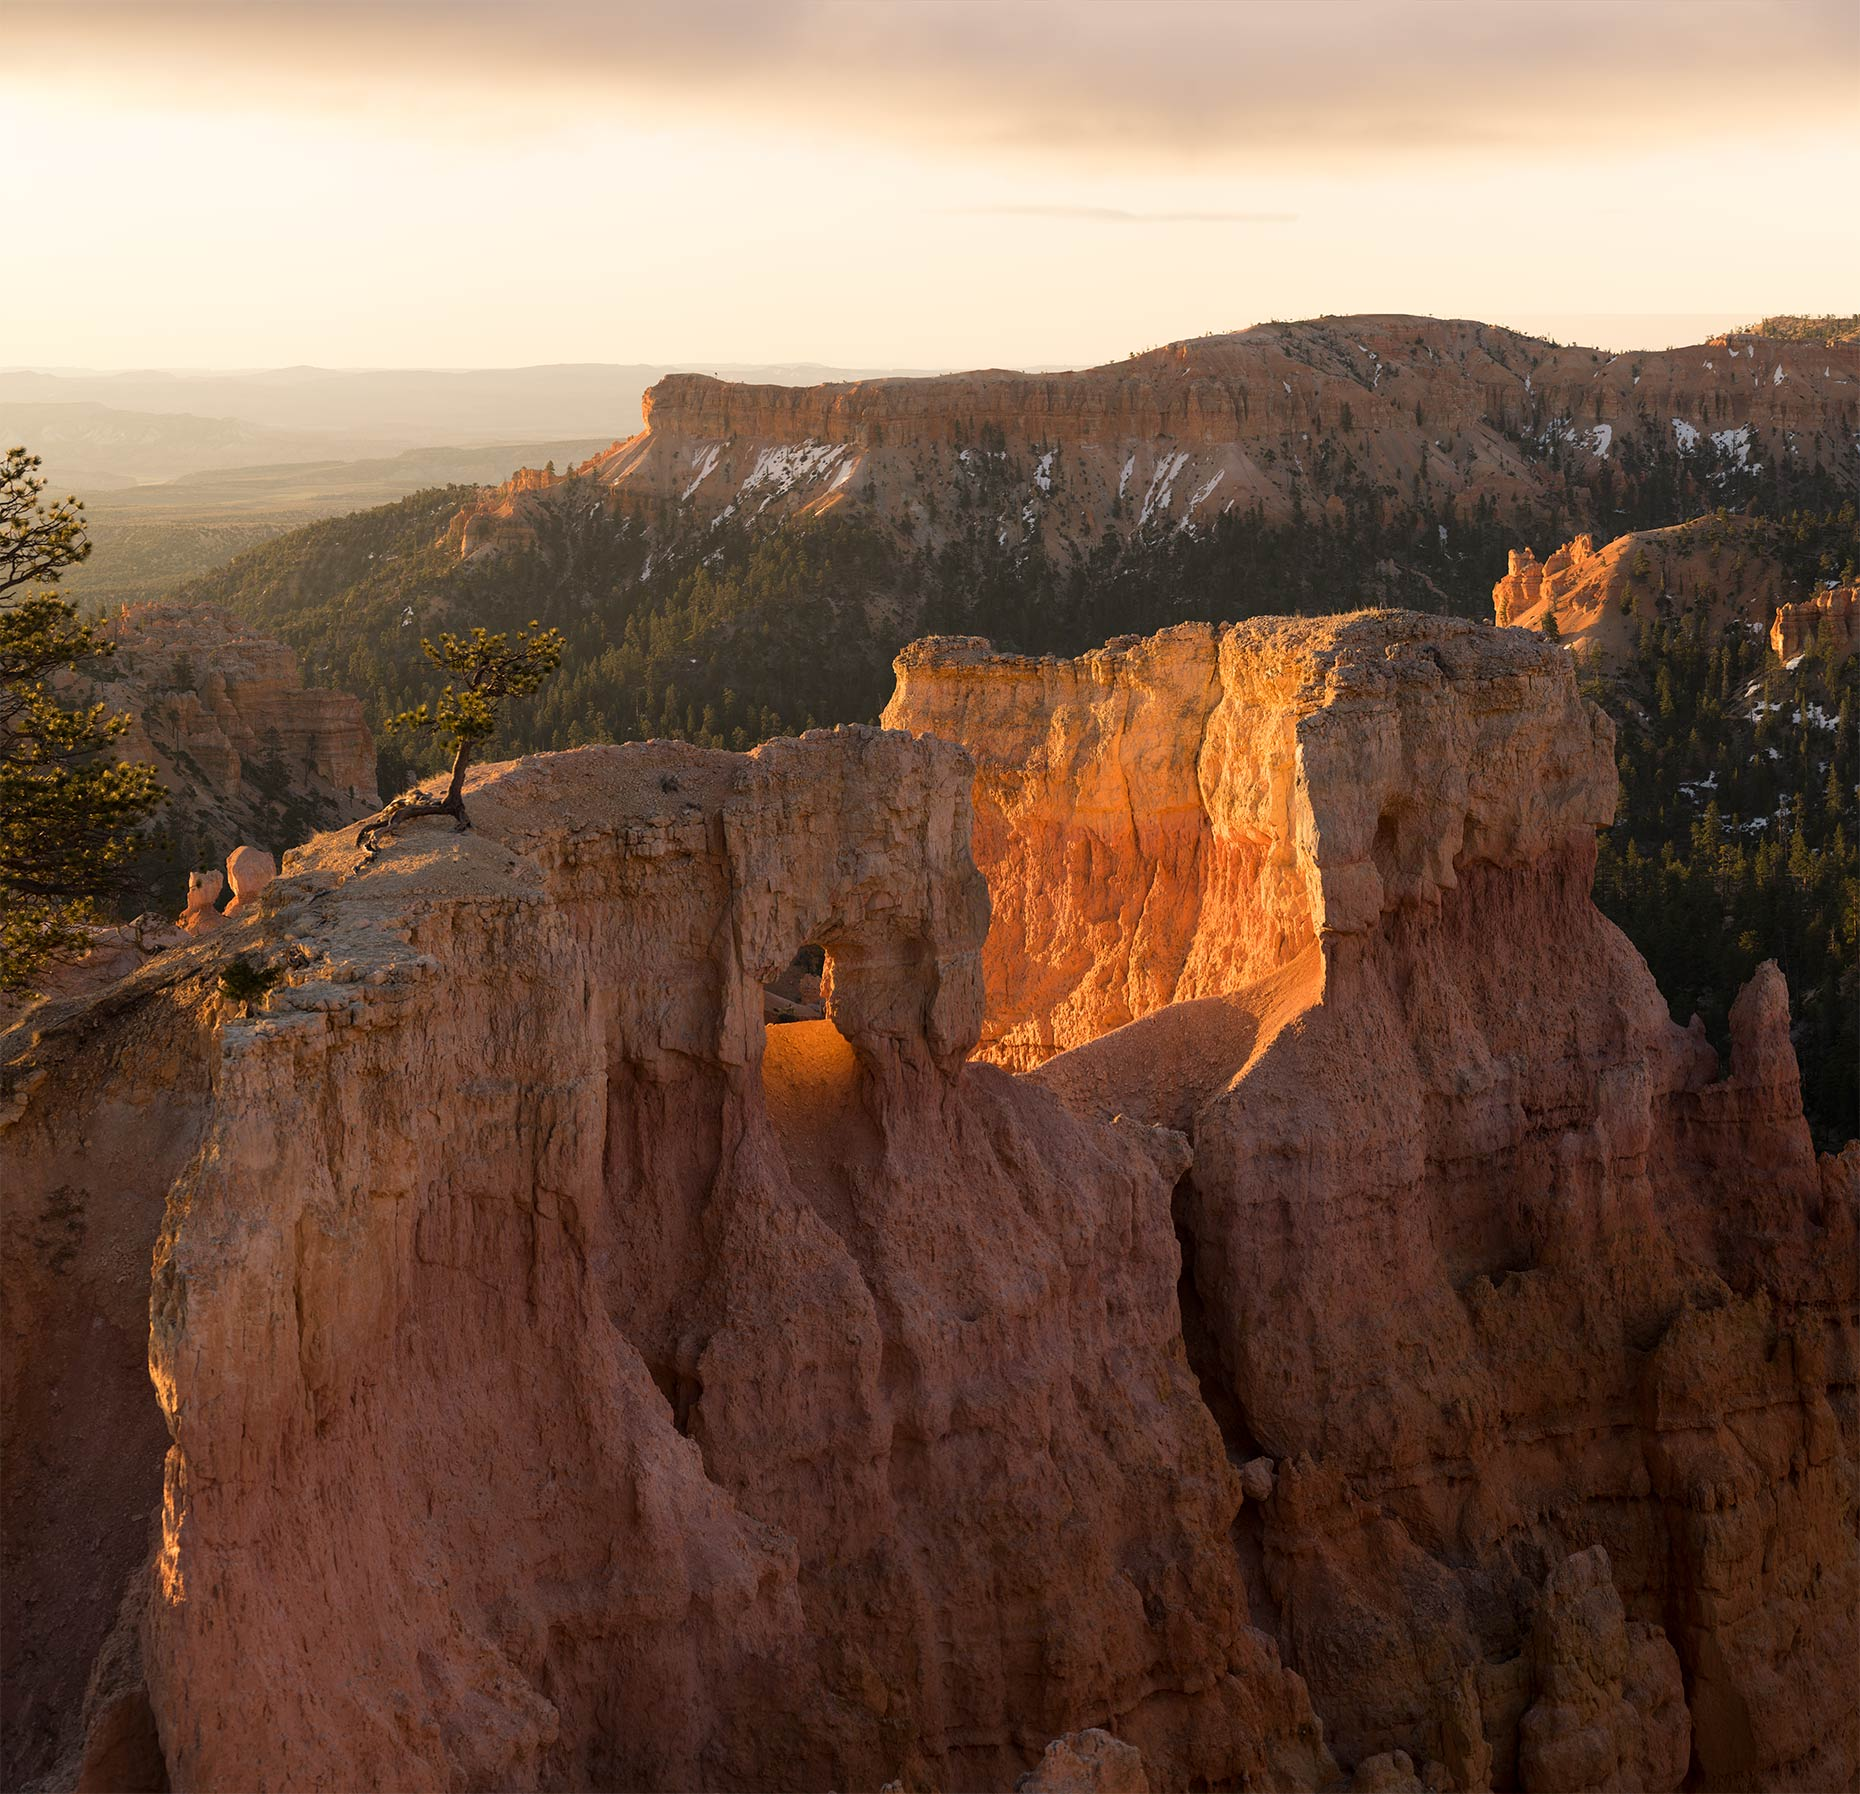 Lane_Peters_Multimedia_Bryce-Canyon2.jpg